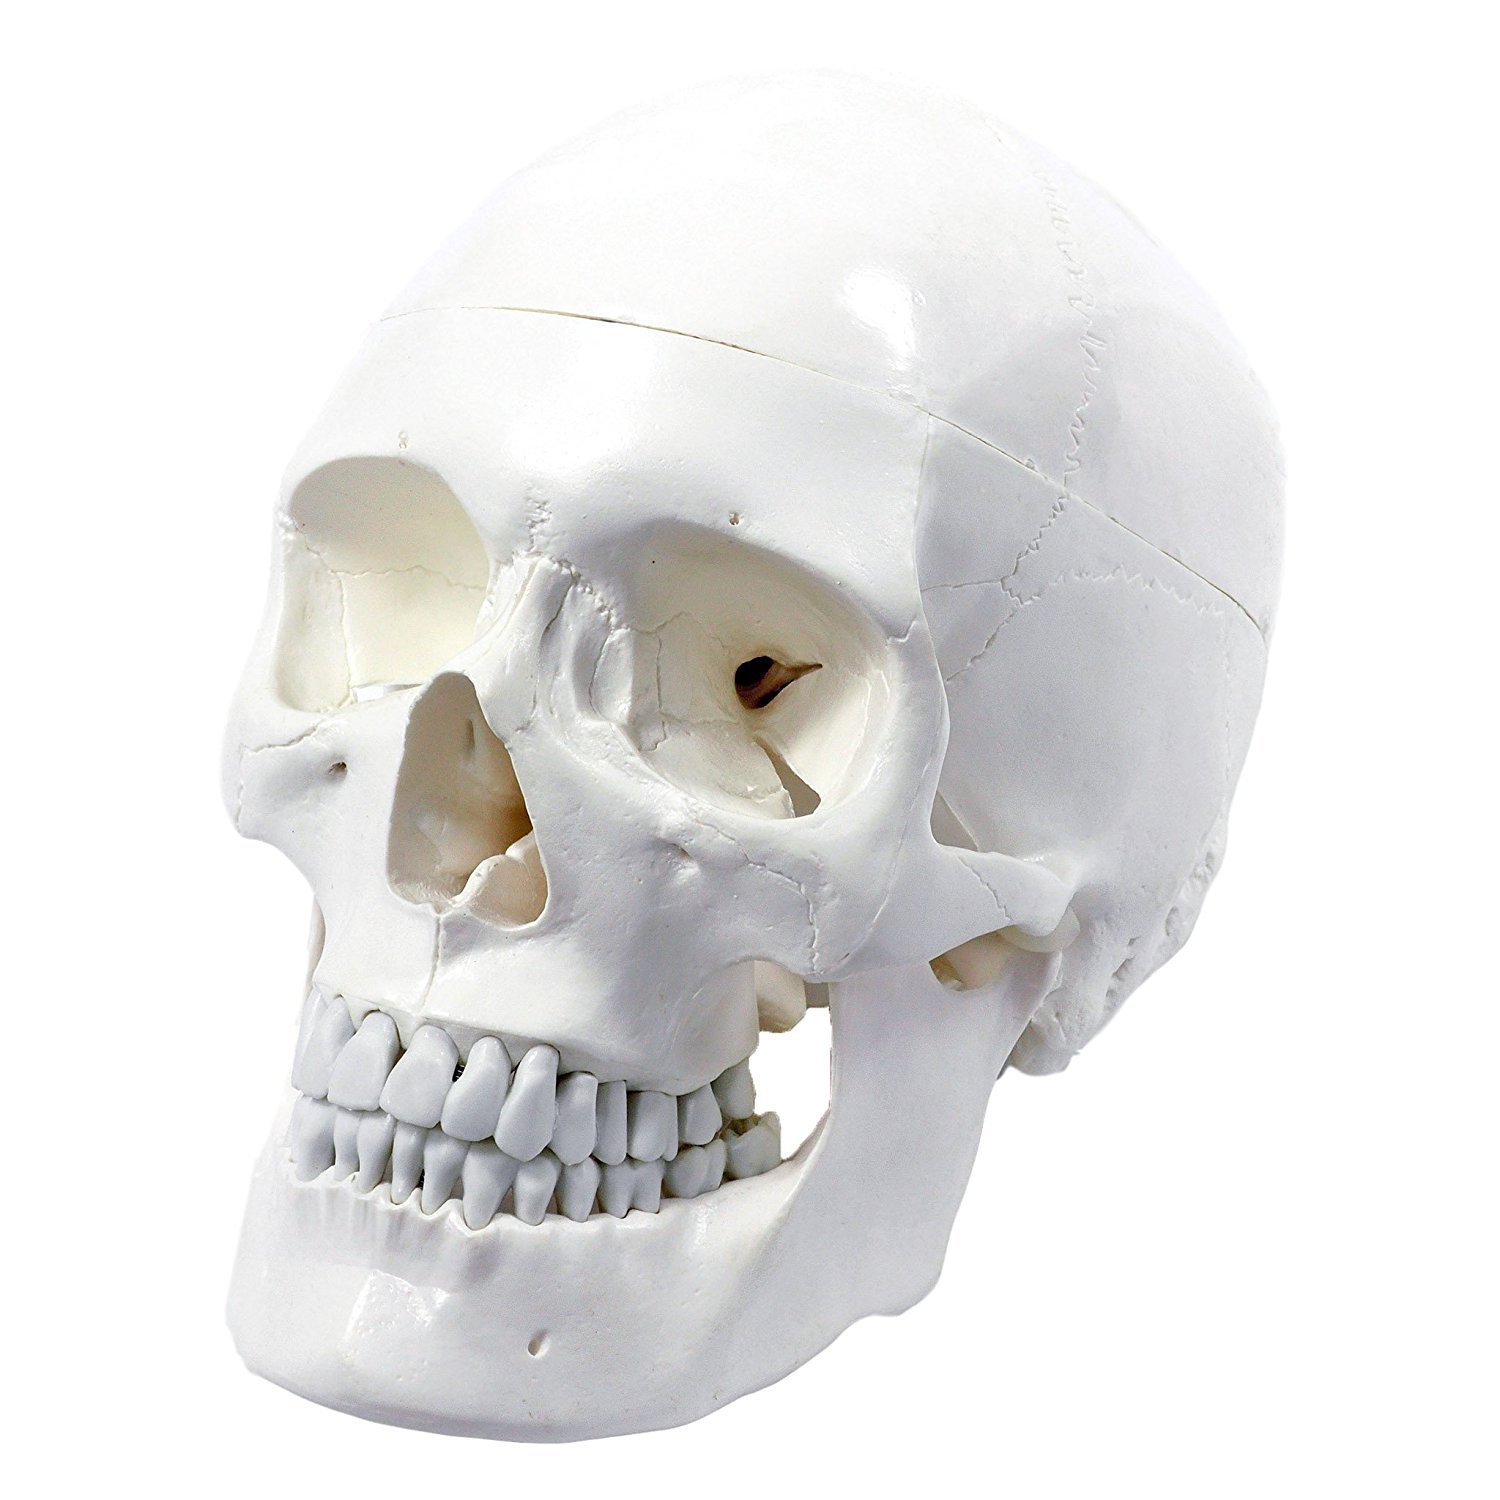 Wellden Medical Anatomical Human Skull Model, Classic, 3-part, Life ...